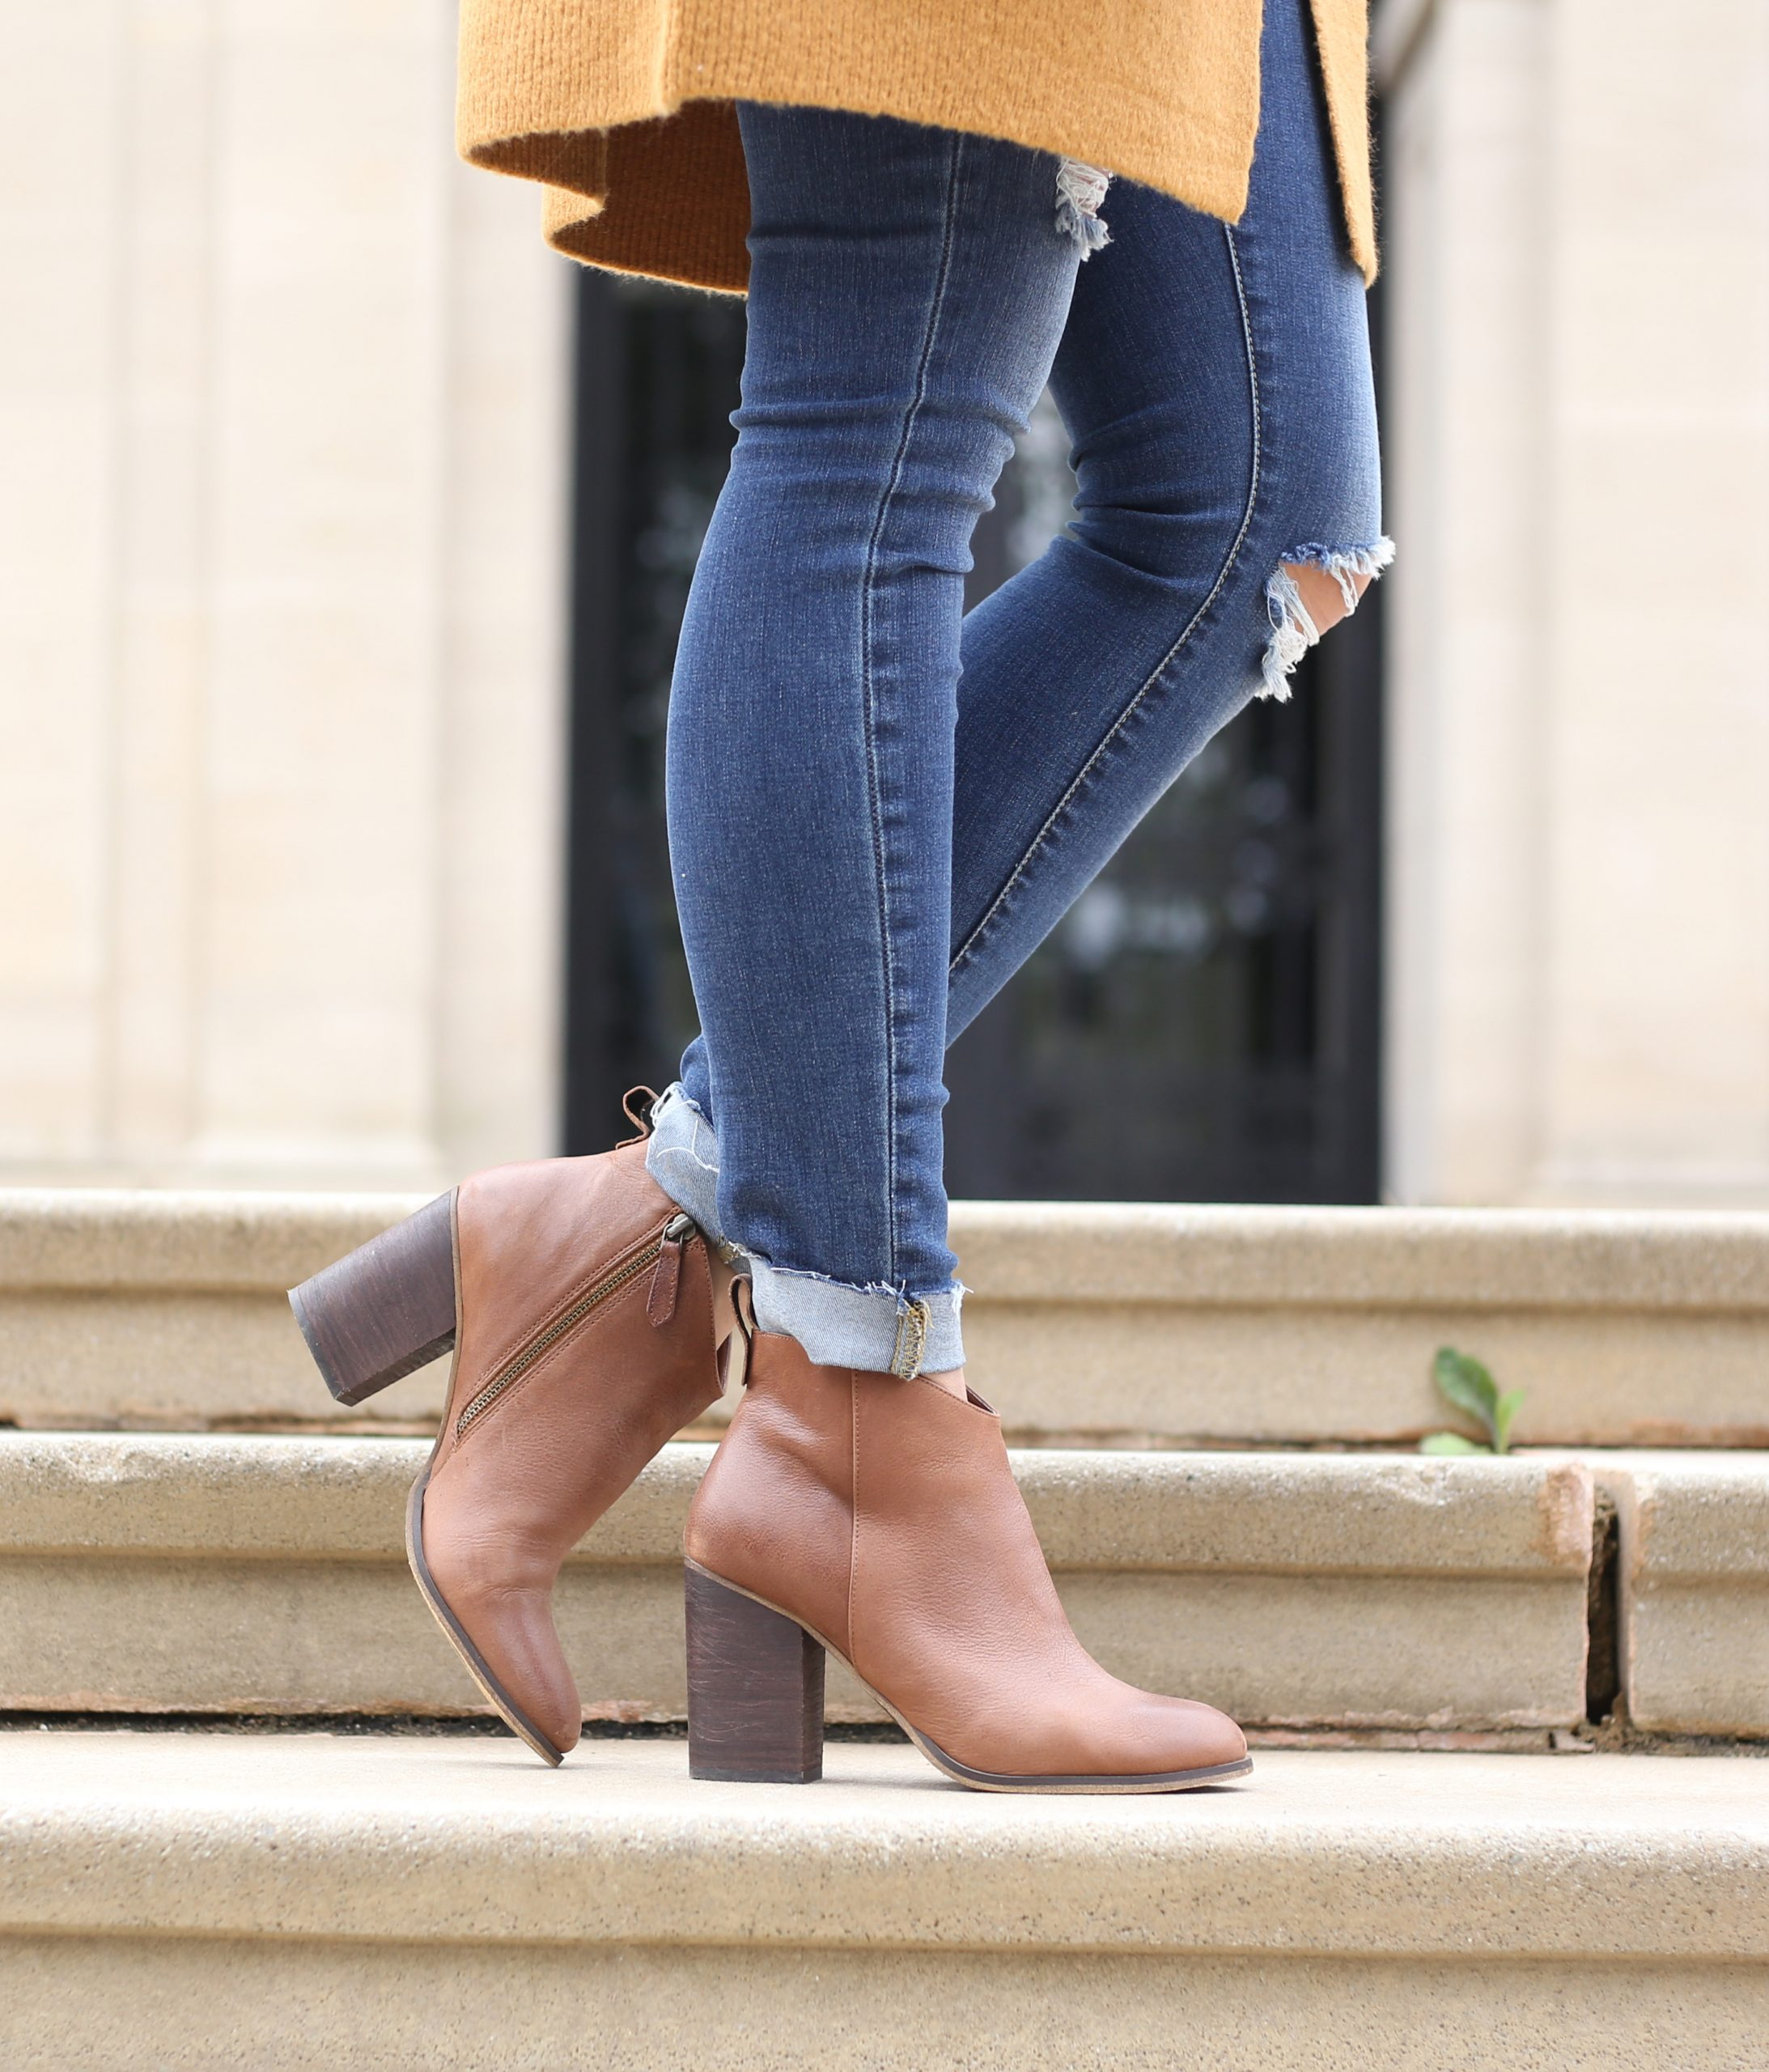 blogger Anna Monteiro of Blushing Rose Style wearing cozy fall sweaters, skinny jeans and brown block heel booties in this cute fall outfit